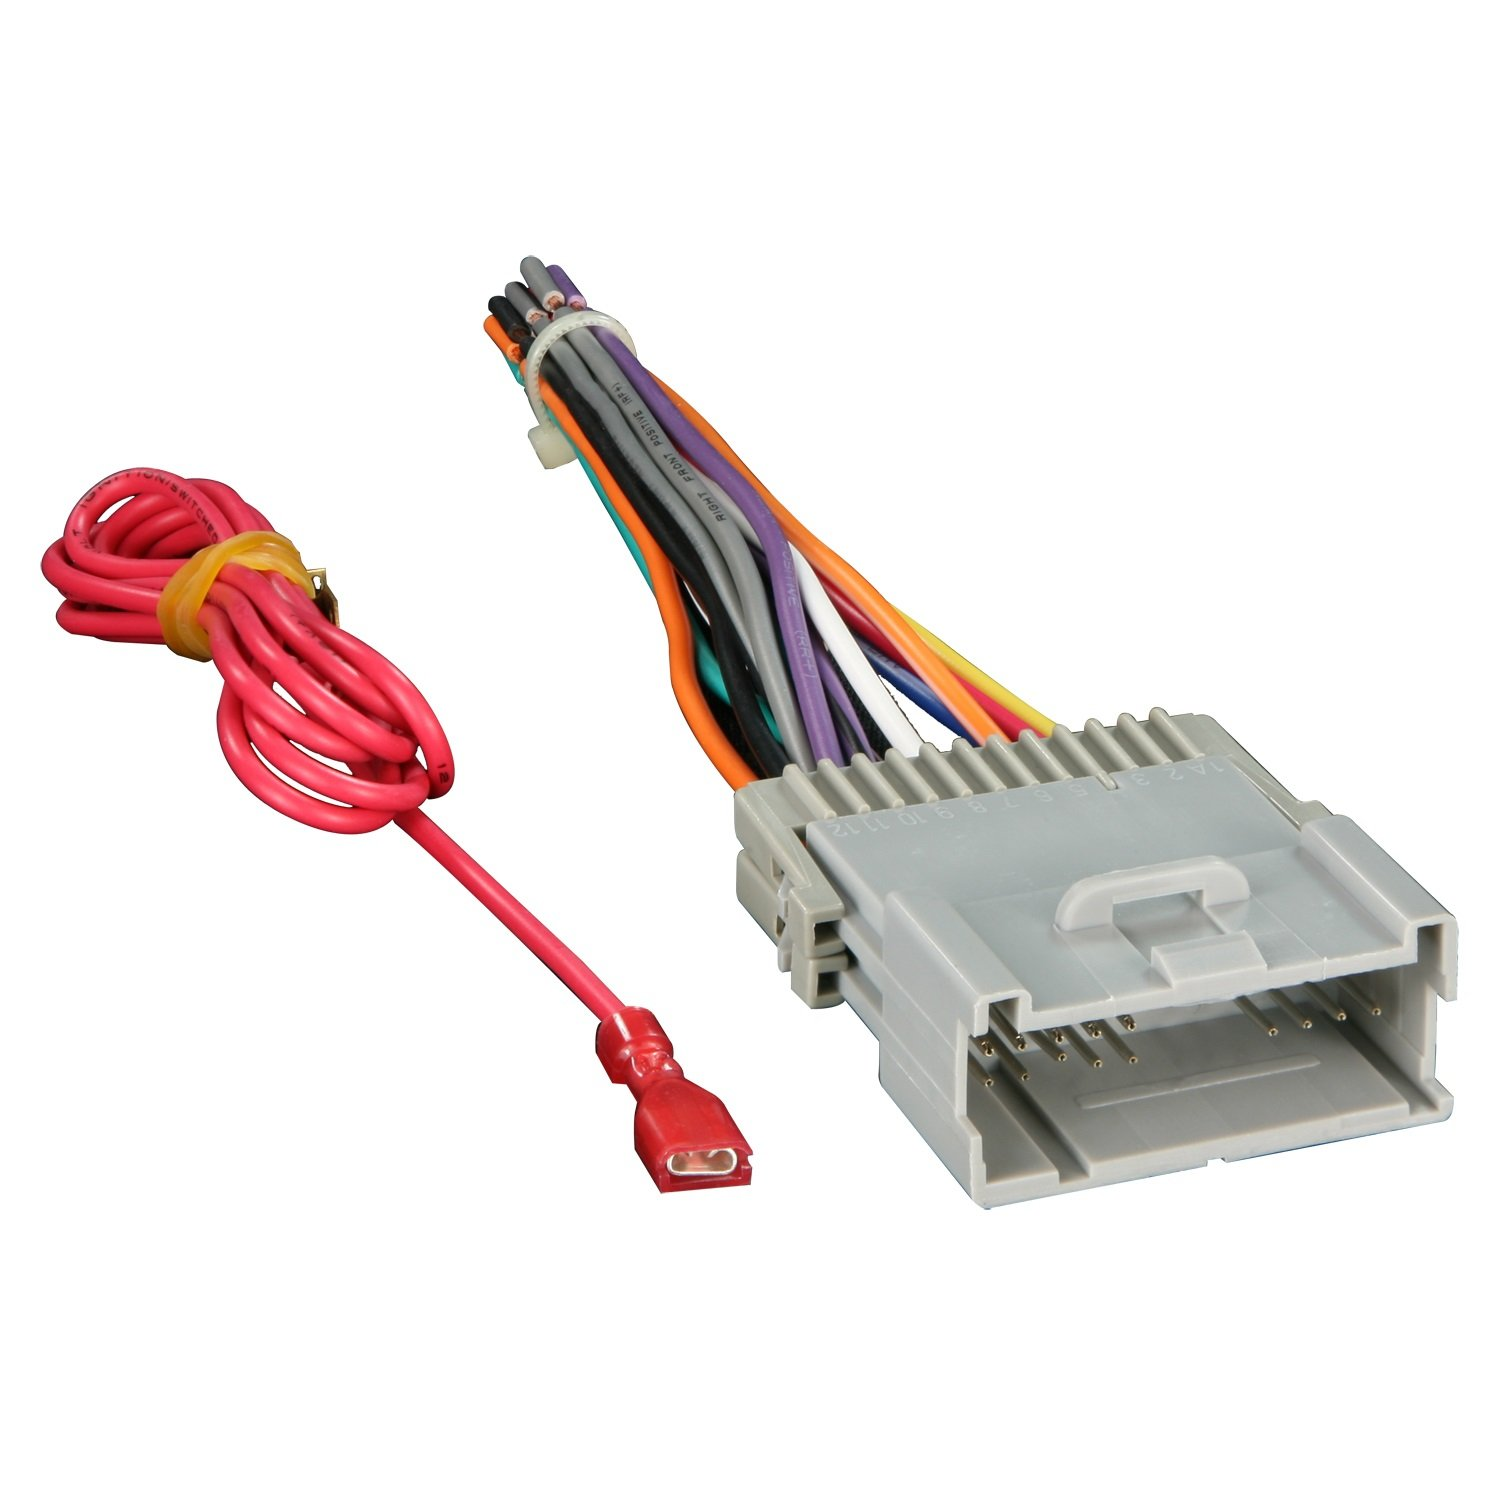 61eewxp9orL._SL1500_ amazon com metra 70 2003 radio wiring harness for gm 98 08 gm wiring harness connectors at bayanpartner.co